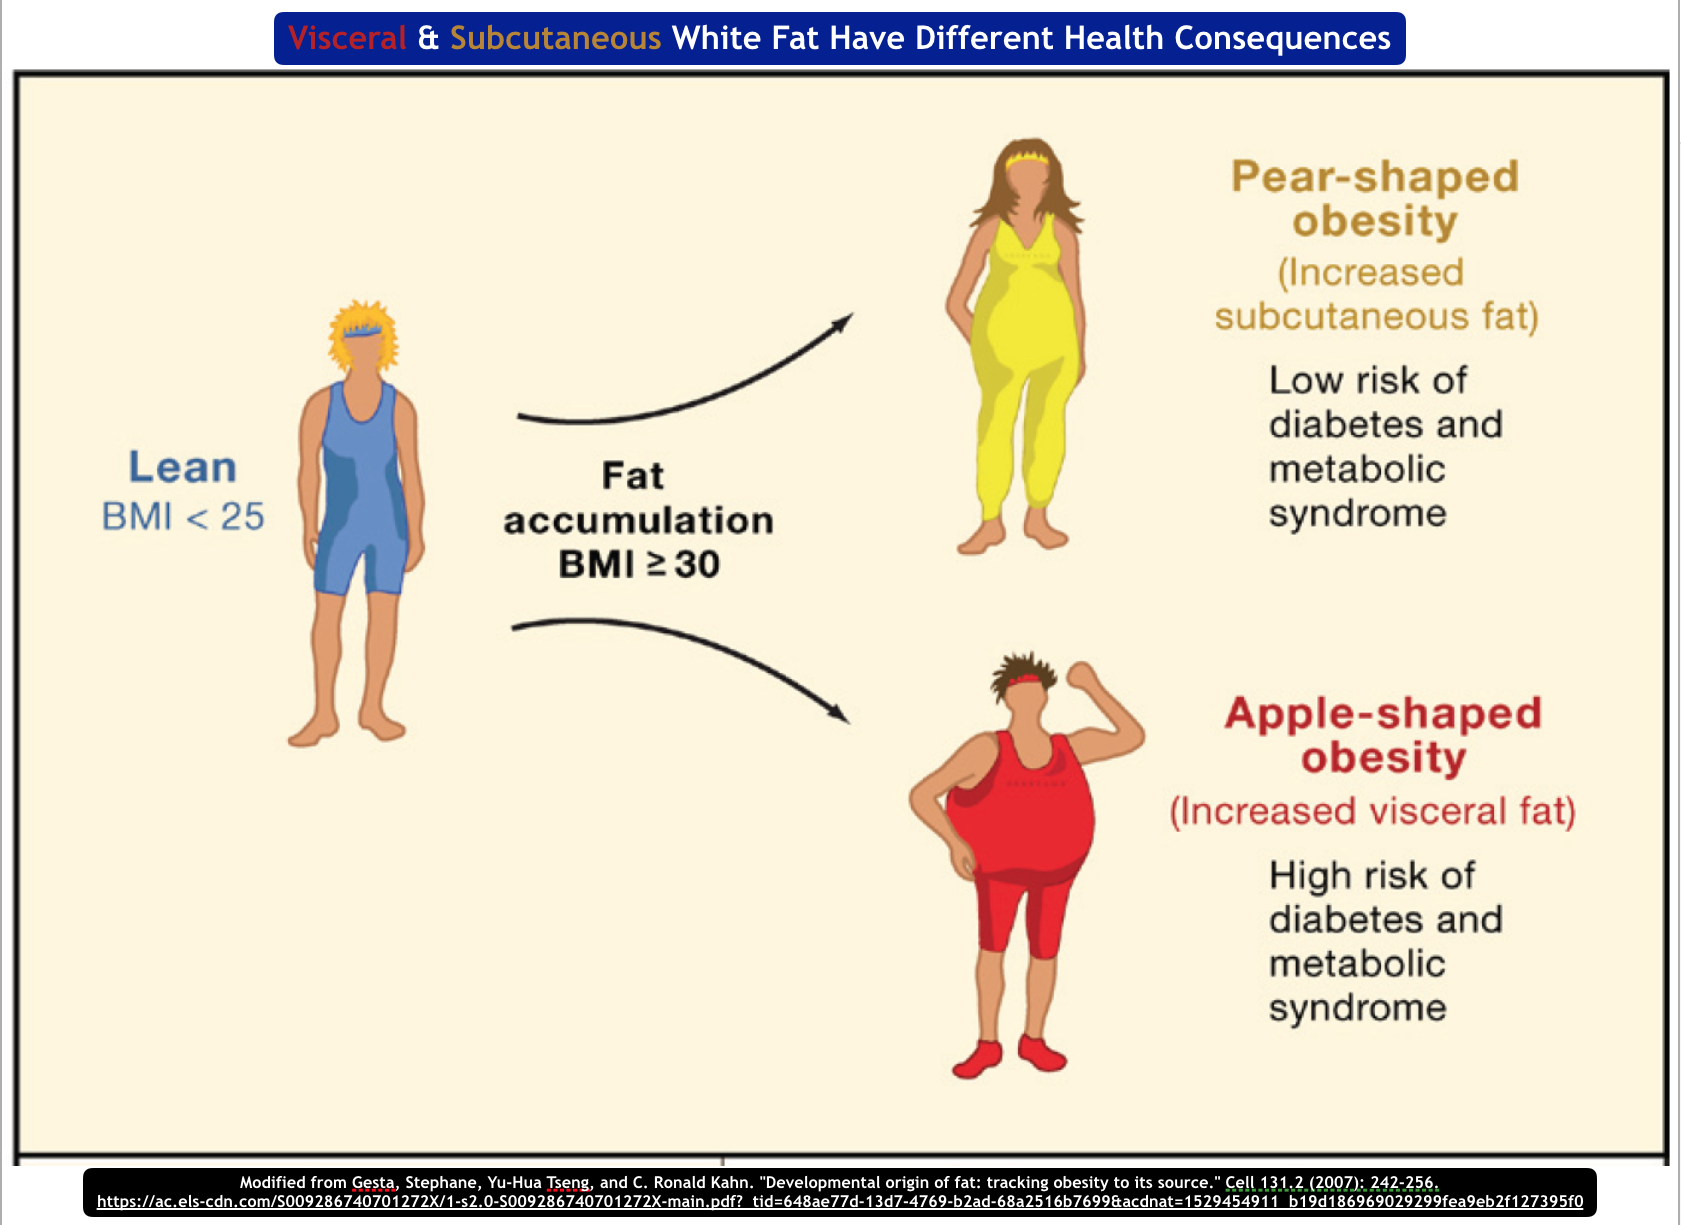 What determines whether you deposit subcutaneous or visceral fat